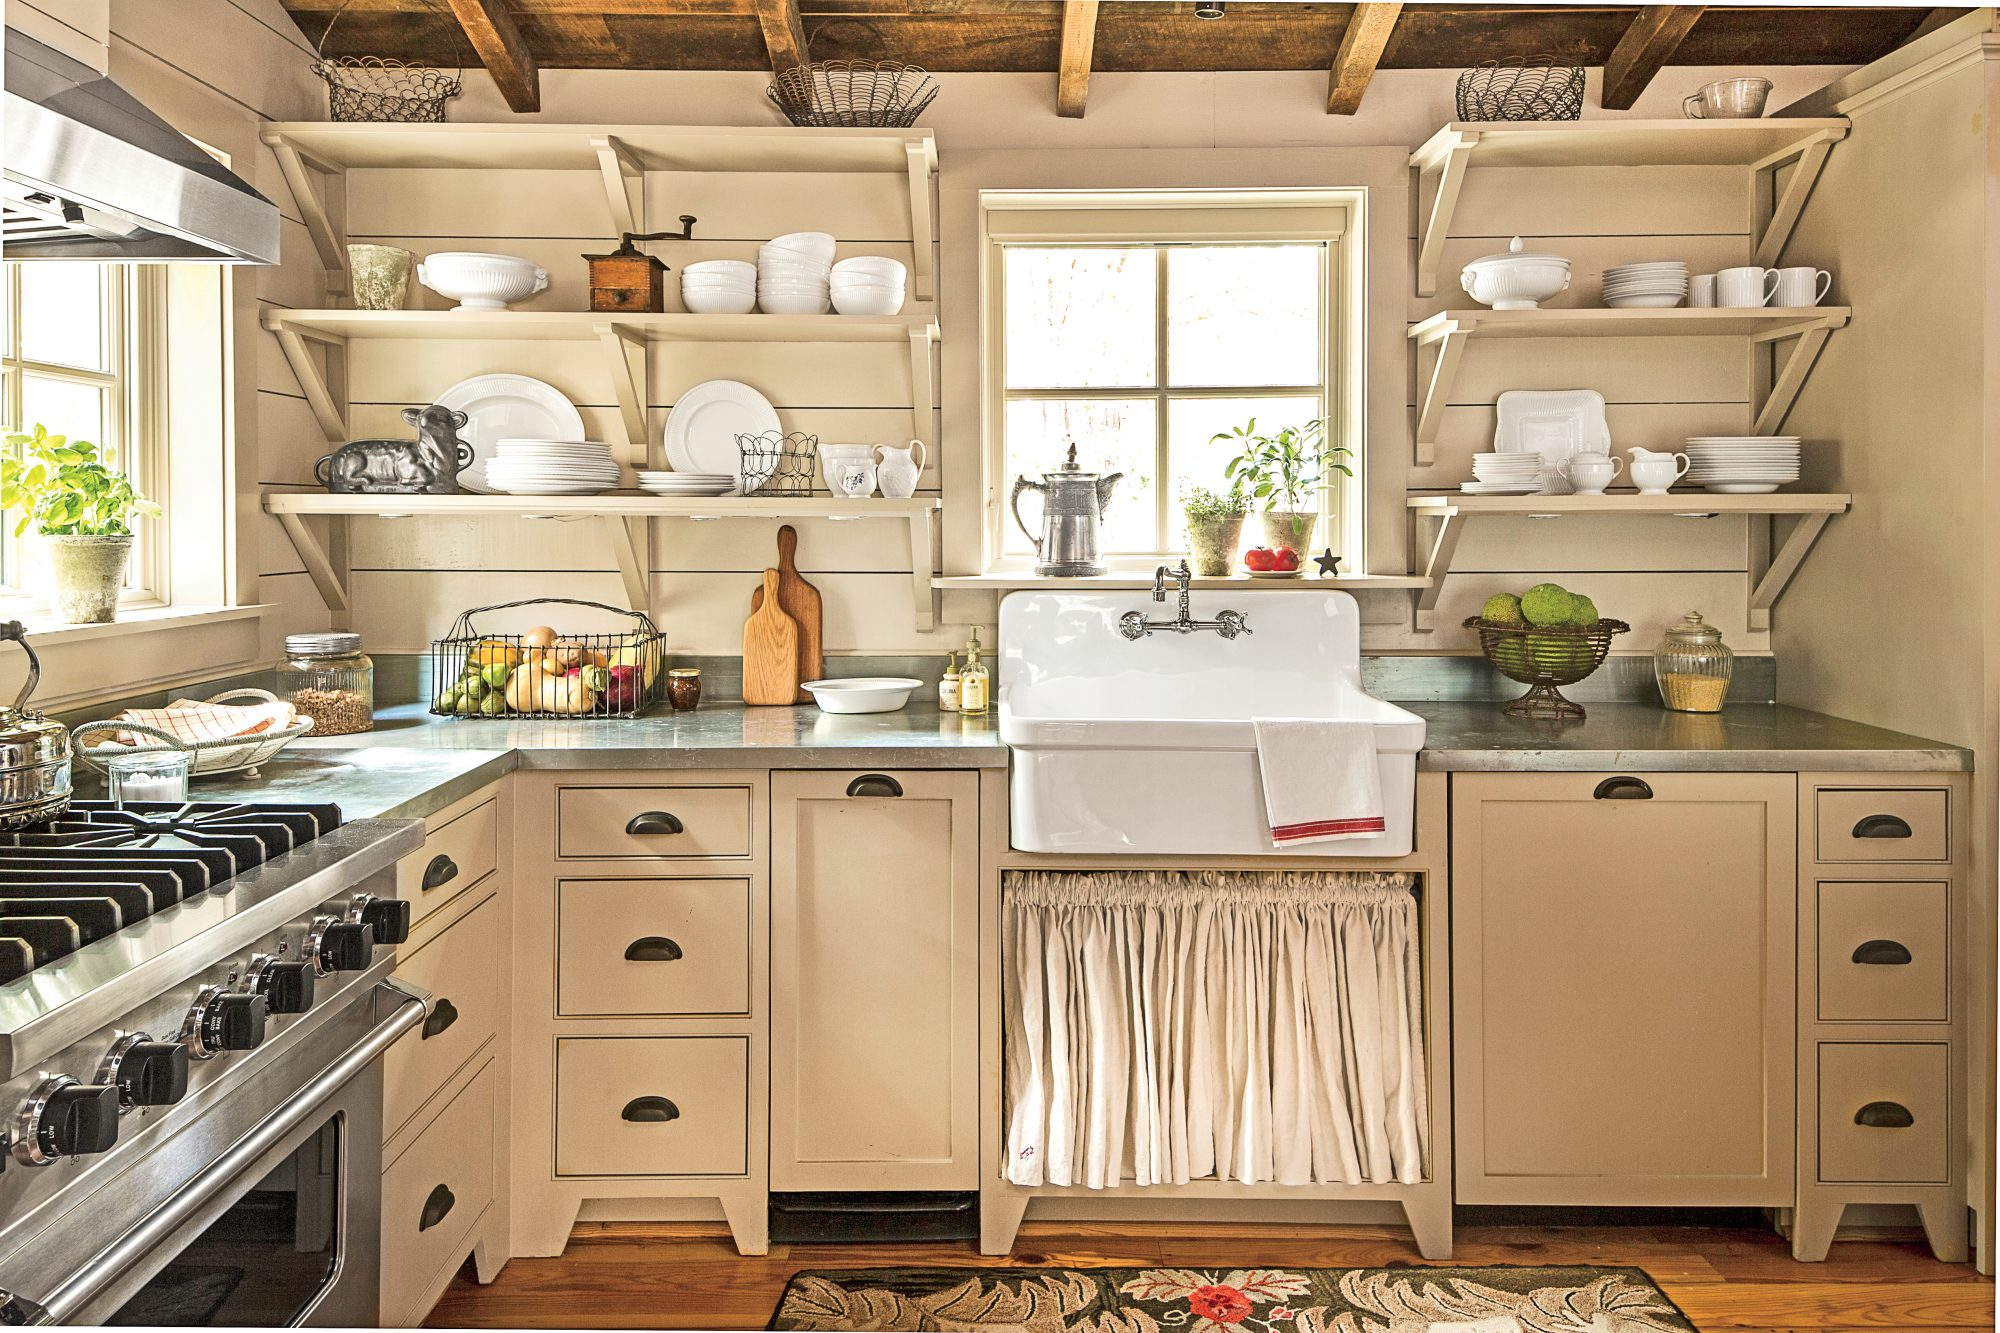 Shiplap in a Cabin Kitchen